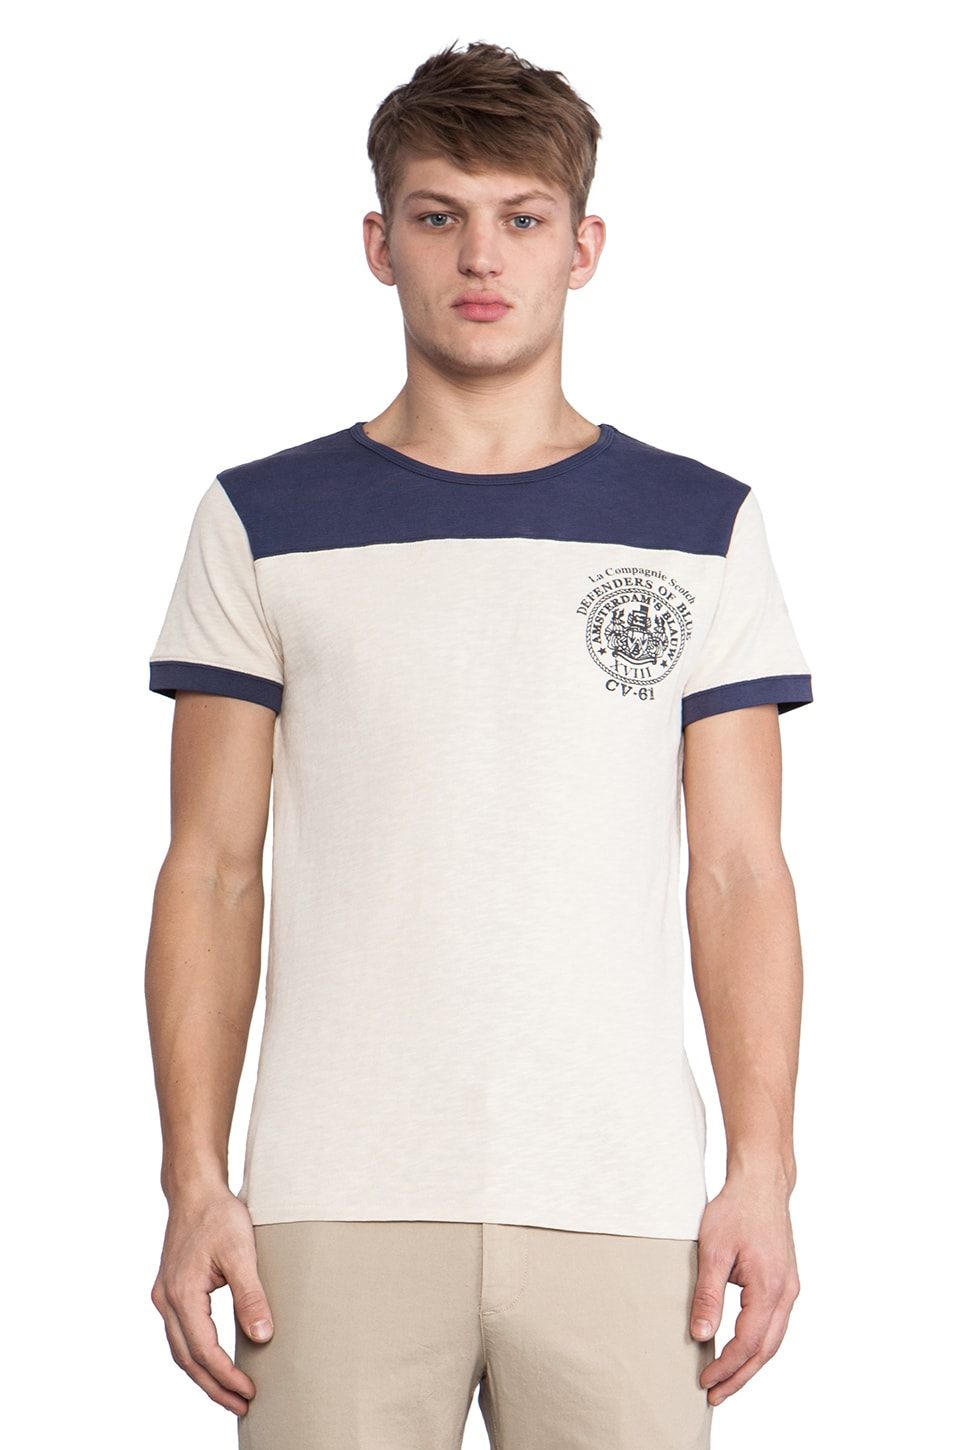 Scotch & Soda Military Rocker Tee in Ecru & Navy